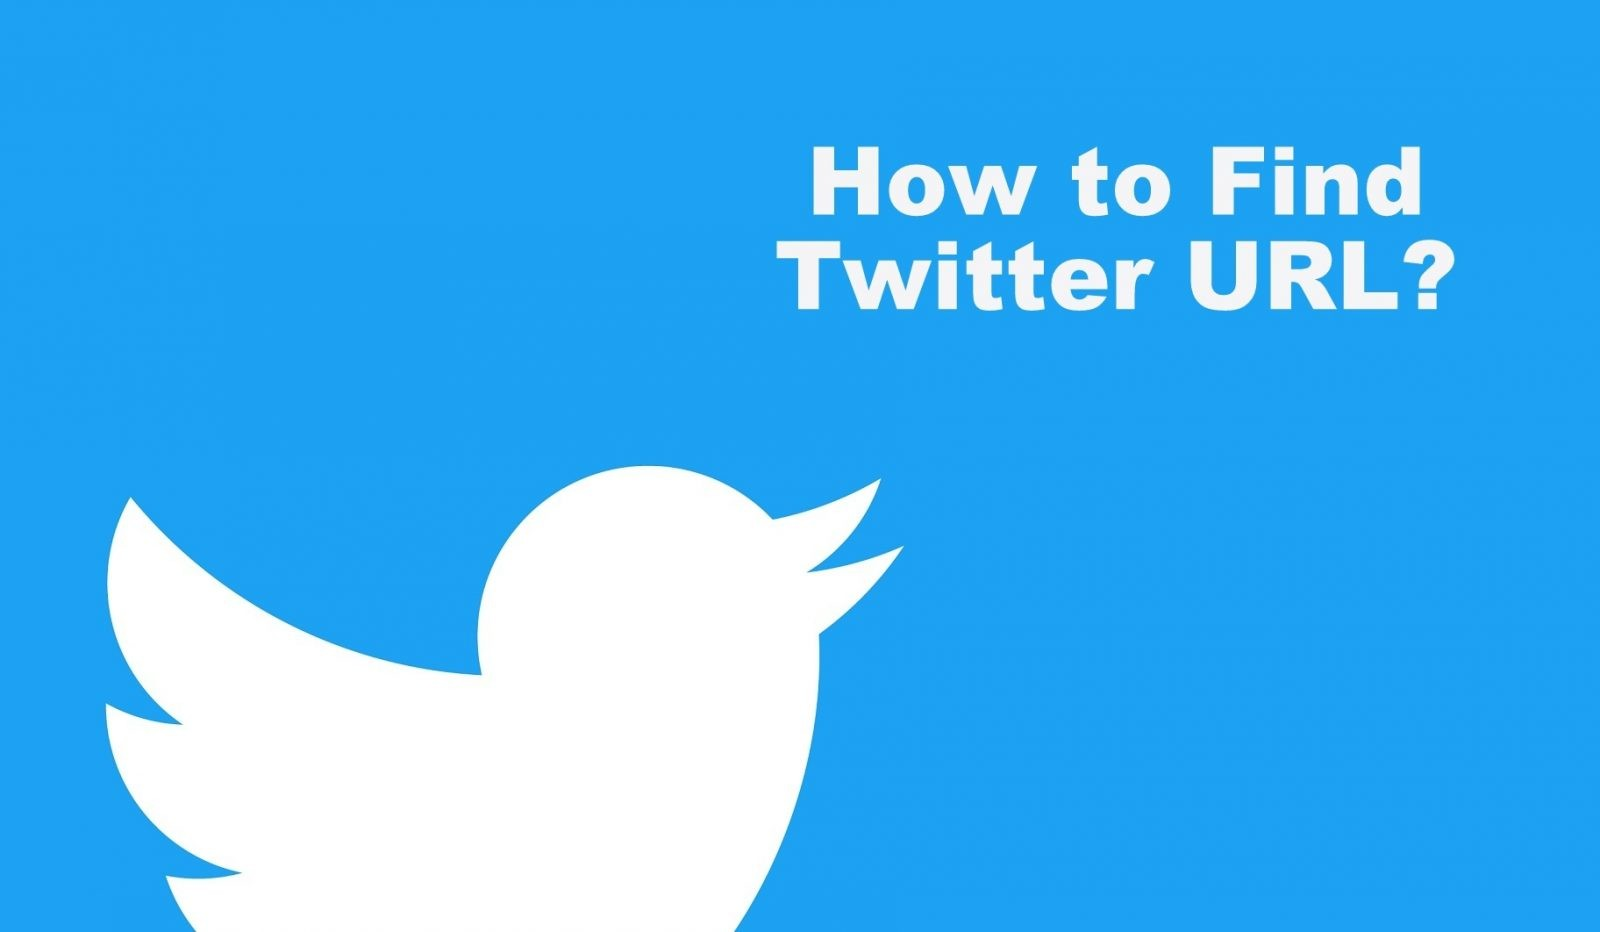 How to Find Twitter URL and Share it with others